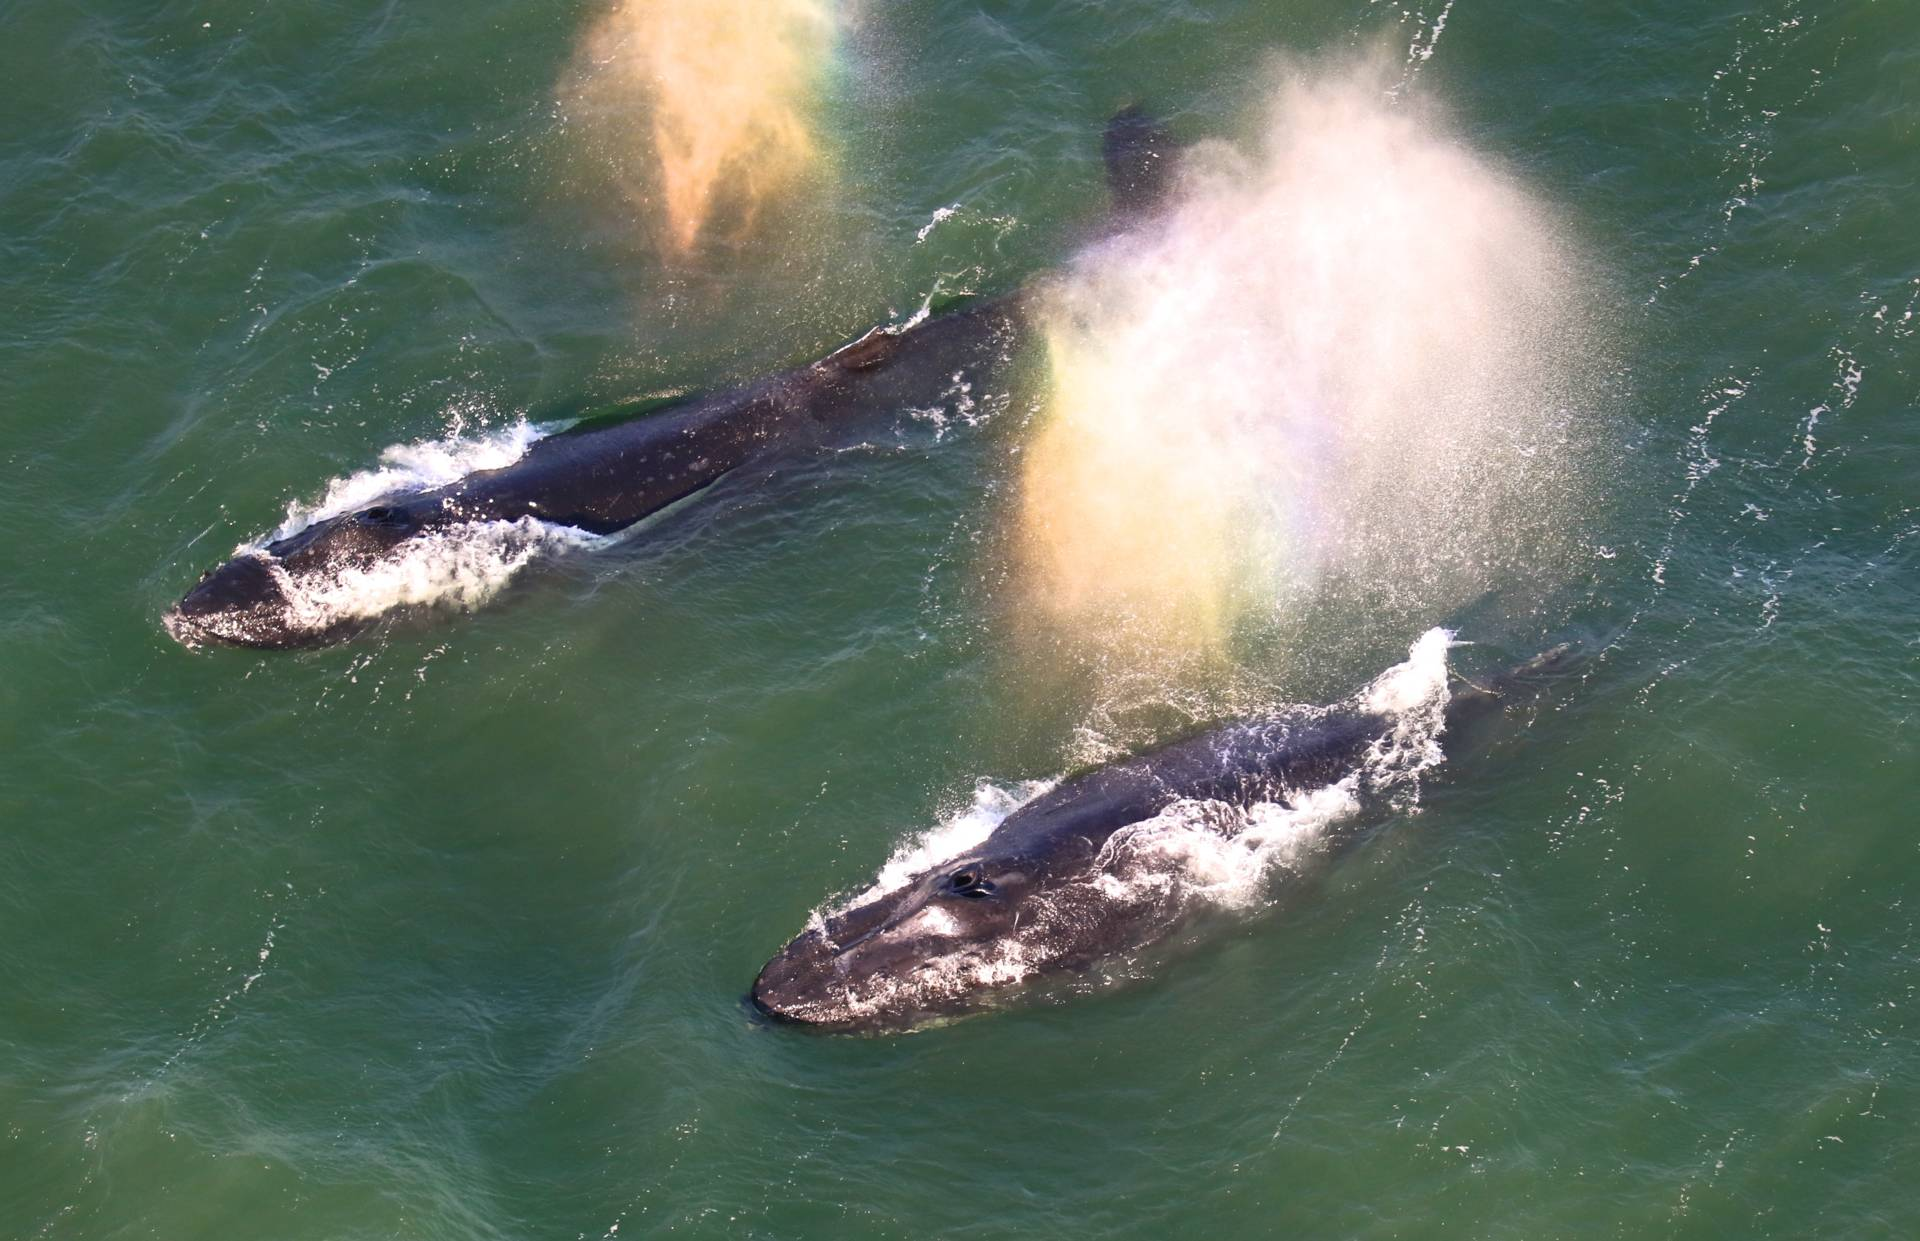 Two humpbacks whales sighted inside the bay on May 15.